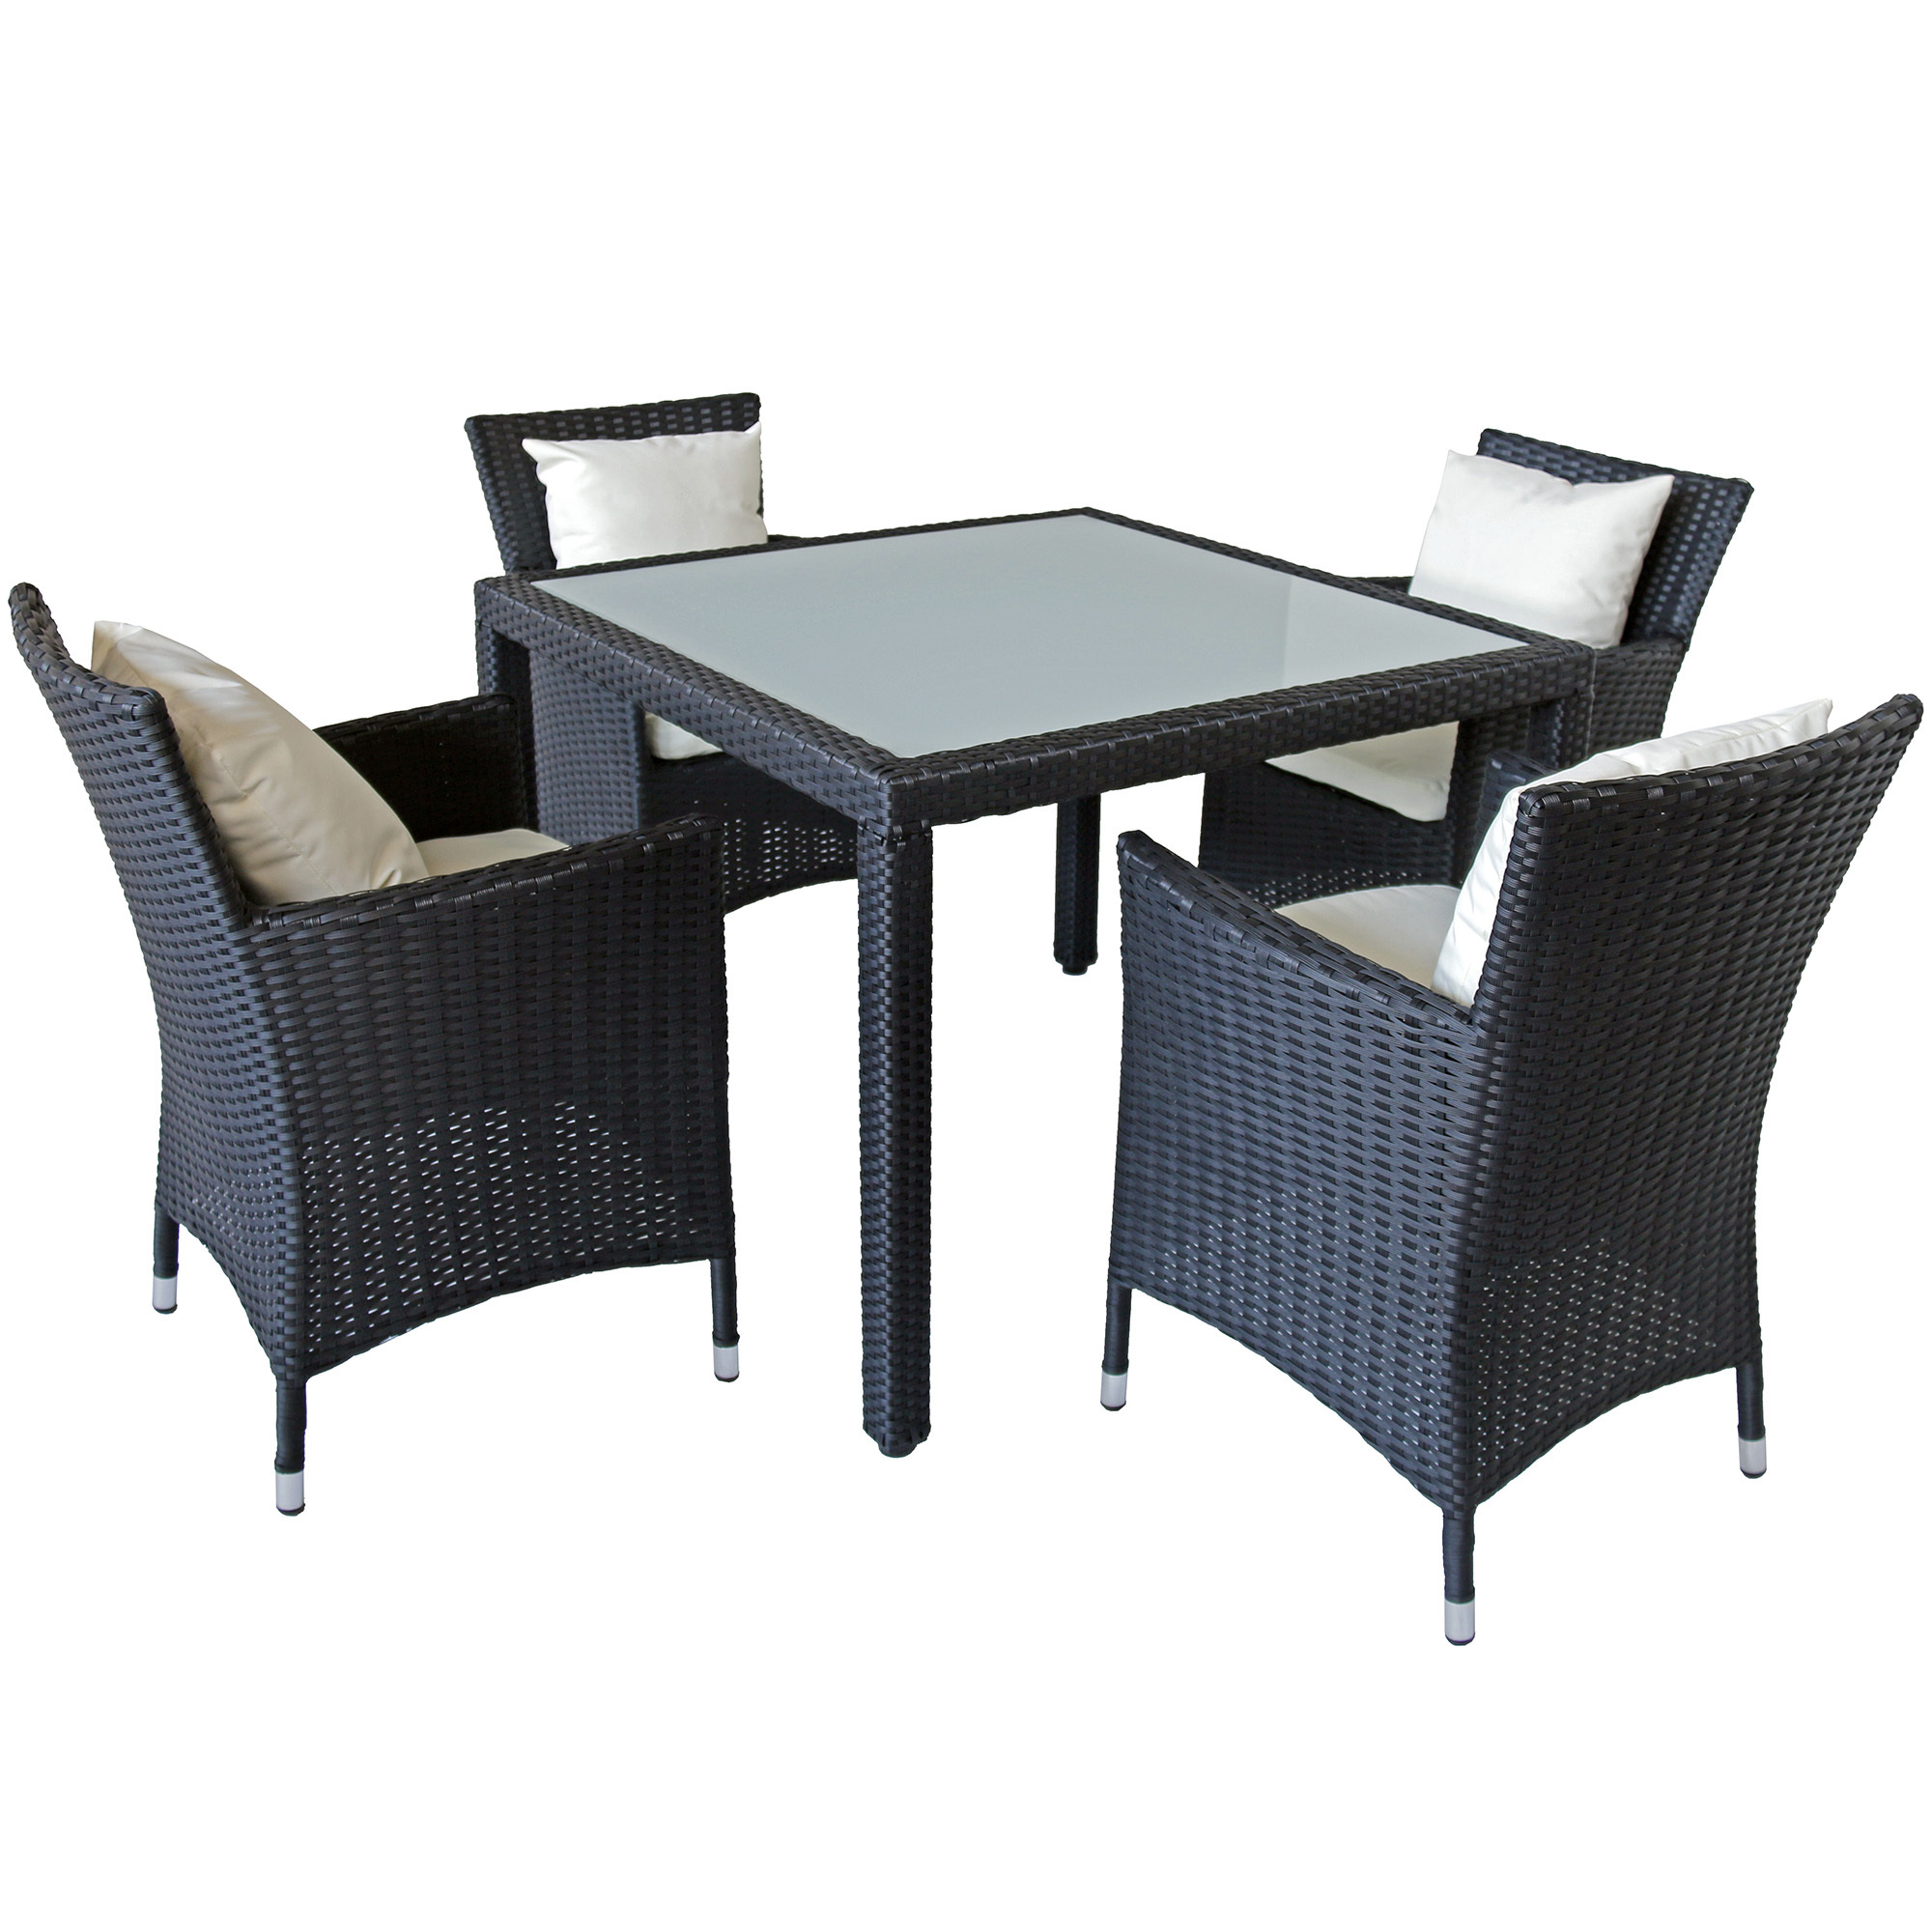 Naturally Provinicial 4 Seater Brogan Pe Rattan Outdoor Dining Set Reviews Temple Webster